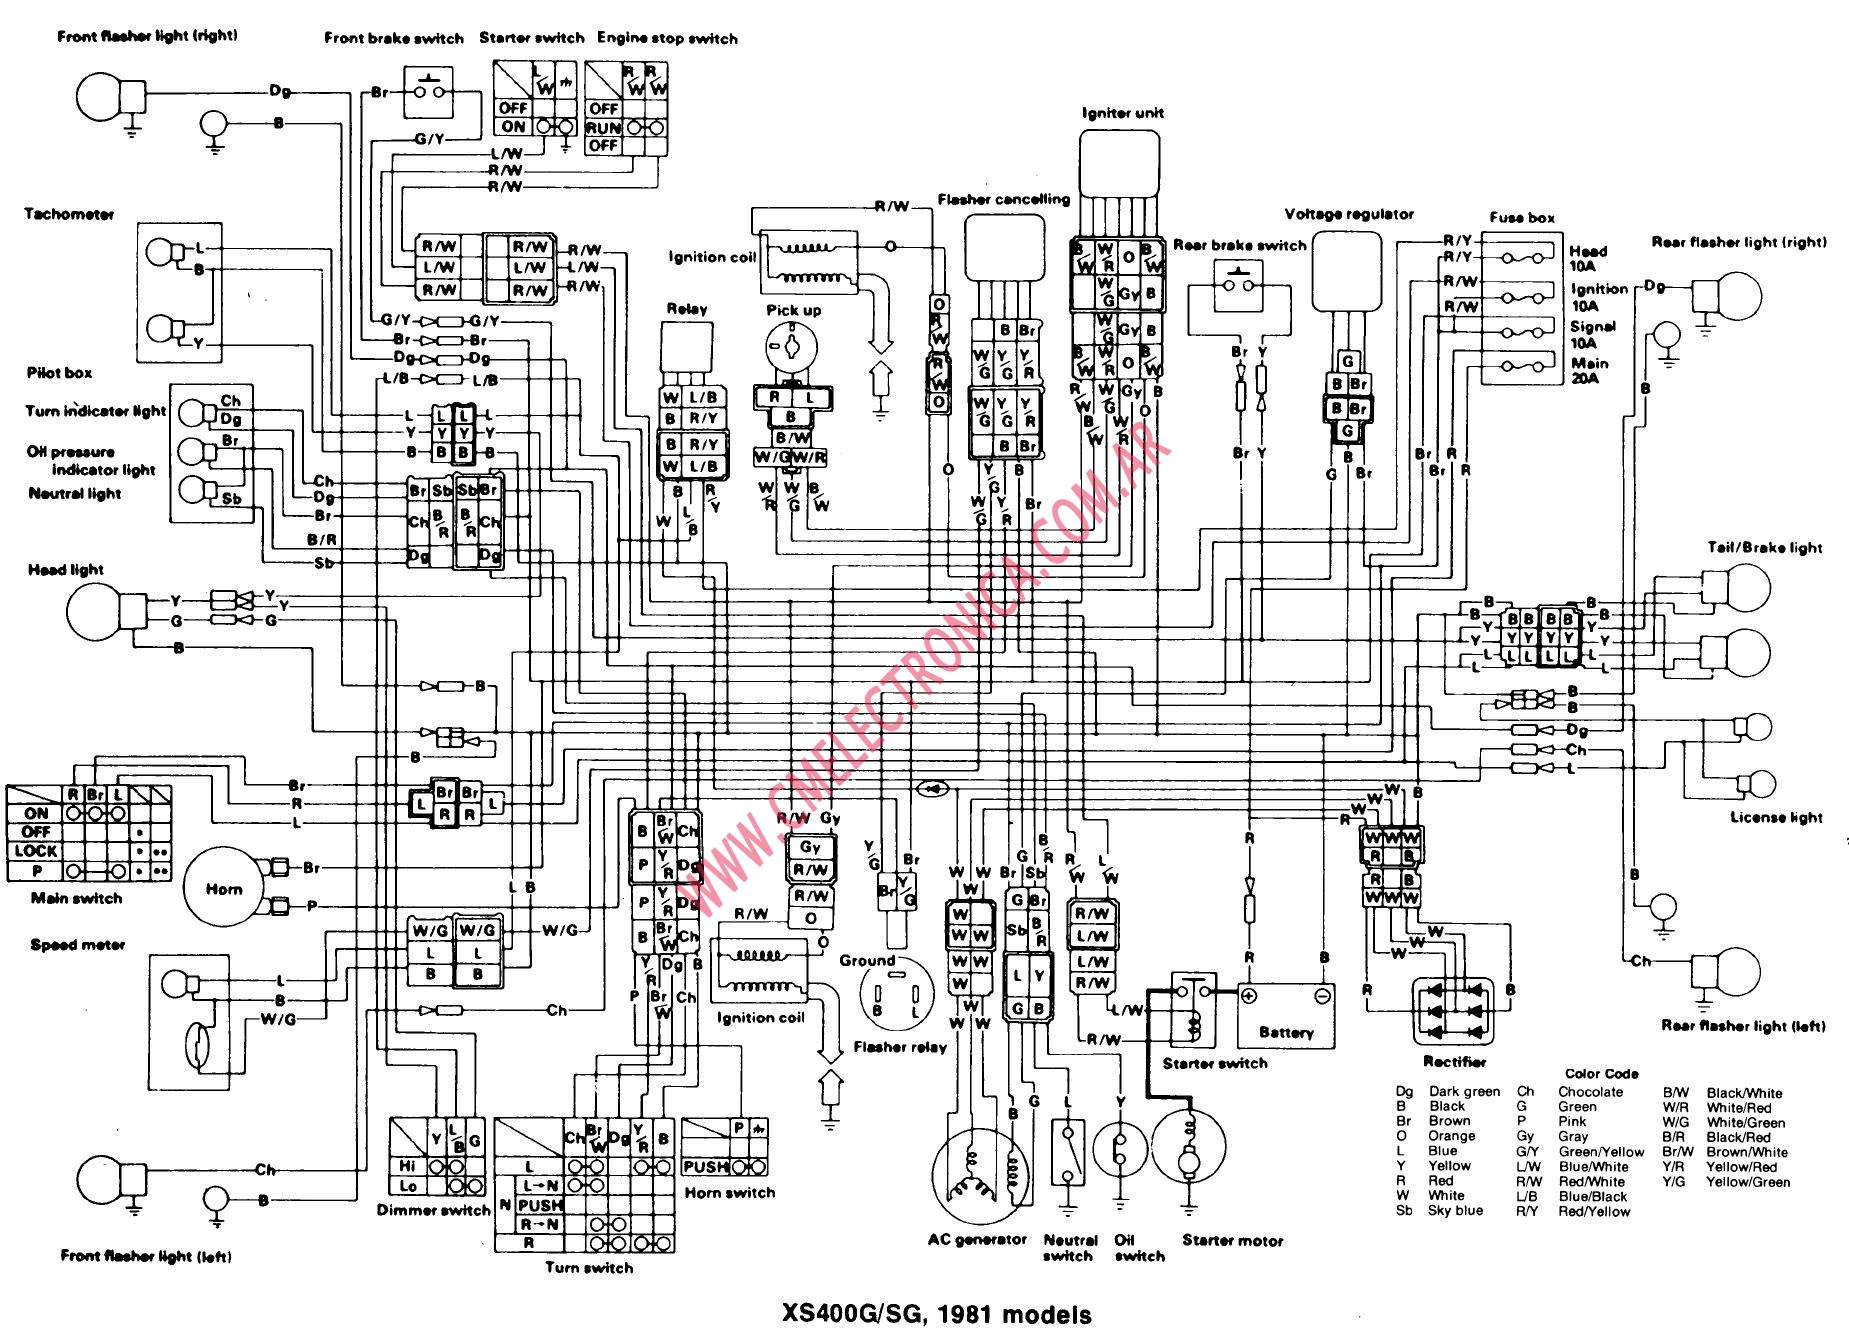 Gy6 150cc Fuel Diagram in addition 2005 Yamaha Raptor Wiring Diagram besides Warn Winch Wiring Diagrams in addition Weatherpoof Starter Ignition Switch moreover Kawasaki Motorcycle Parts. on honda atv diagrams